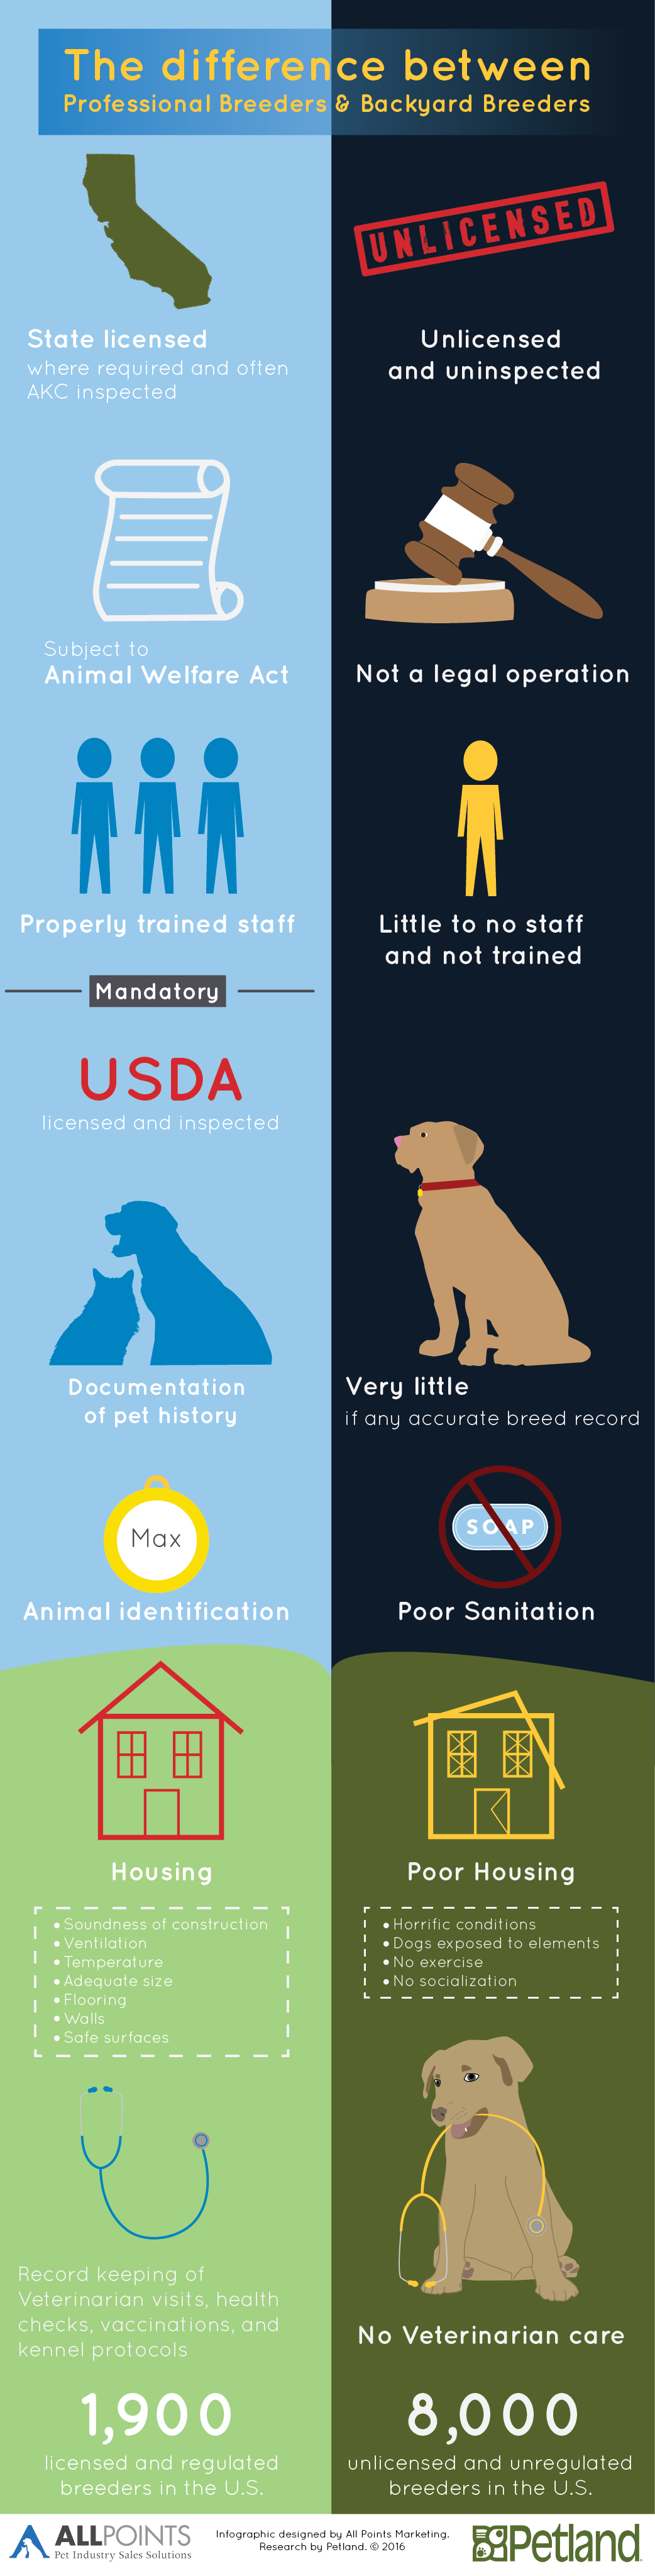 Breeders_Comparison_Infographic.png